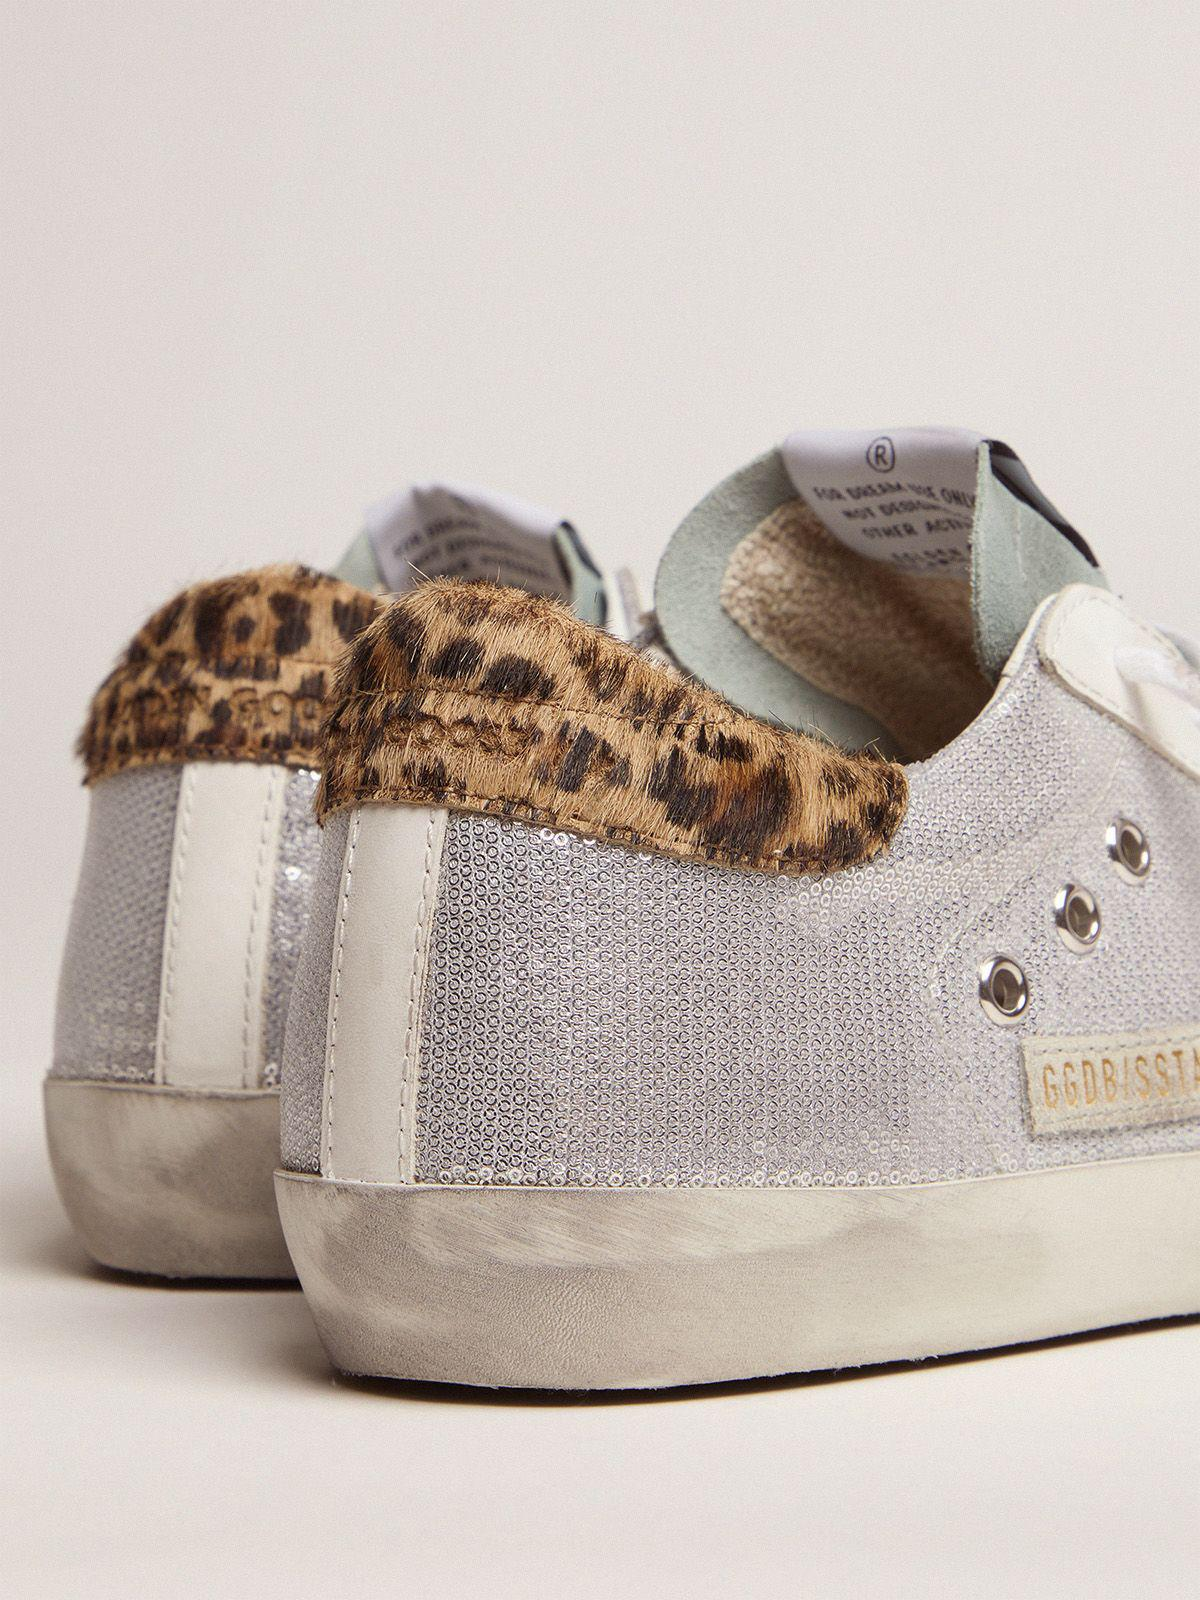 Super-Star sneakers with sequins and leopard-print heel tab 3